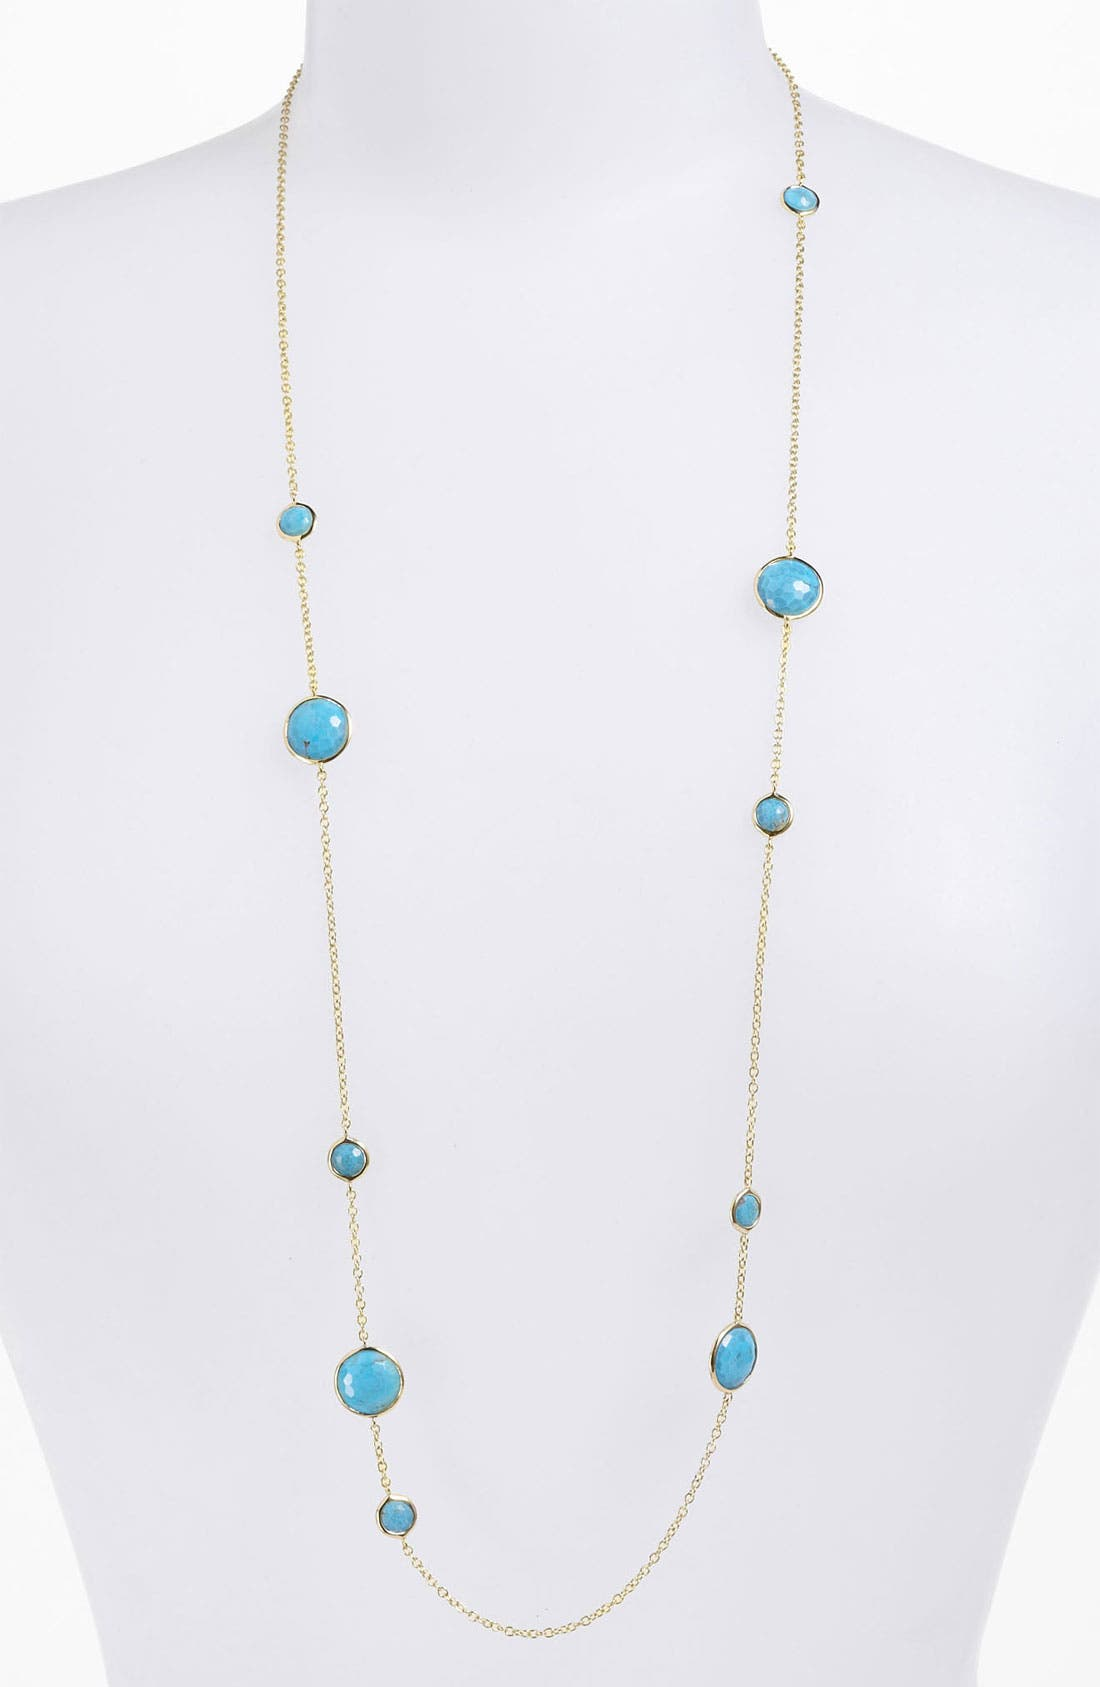 Main Image - Ippolita 'Lollipop' Long 10-Station 18k Gold Necklace